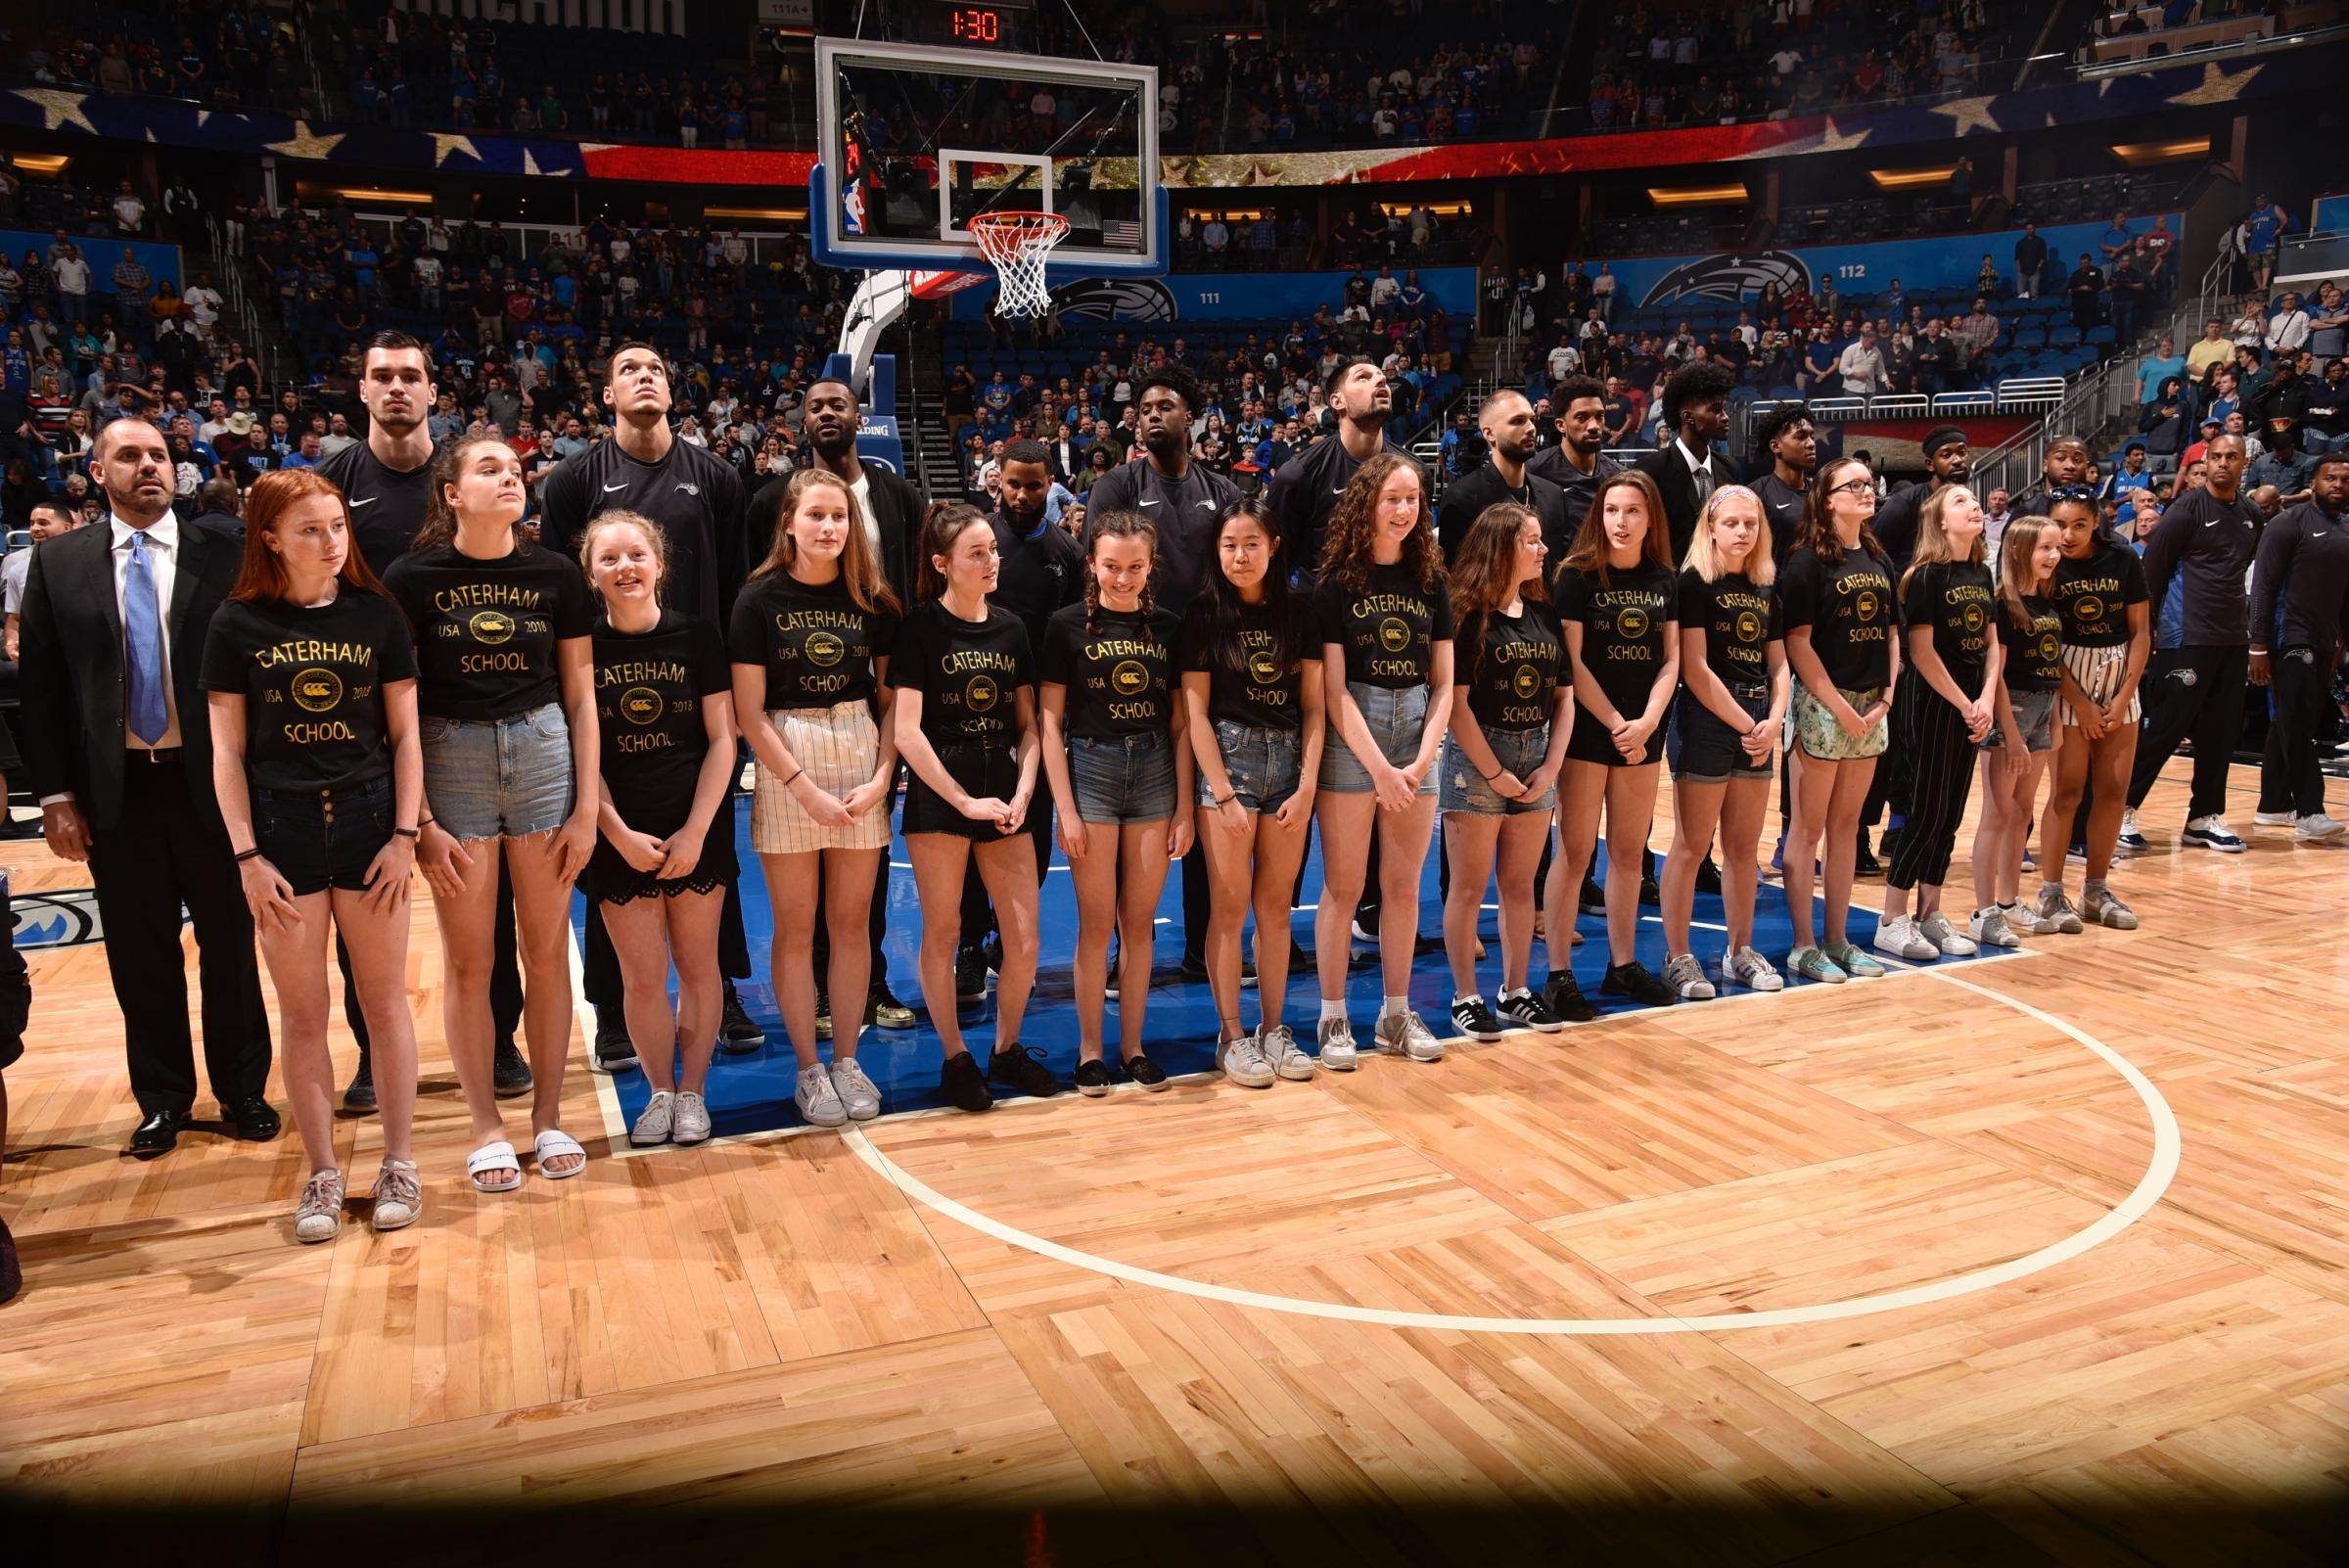 Caterham schoolgirls were the on-court guests at an NBA game this week